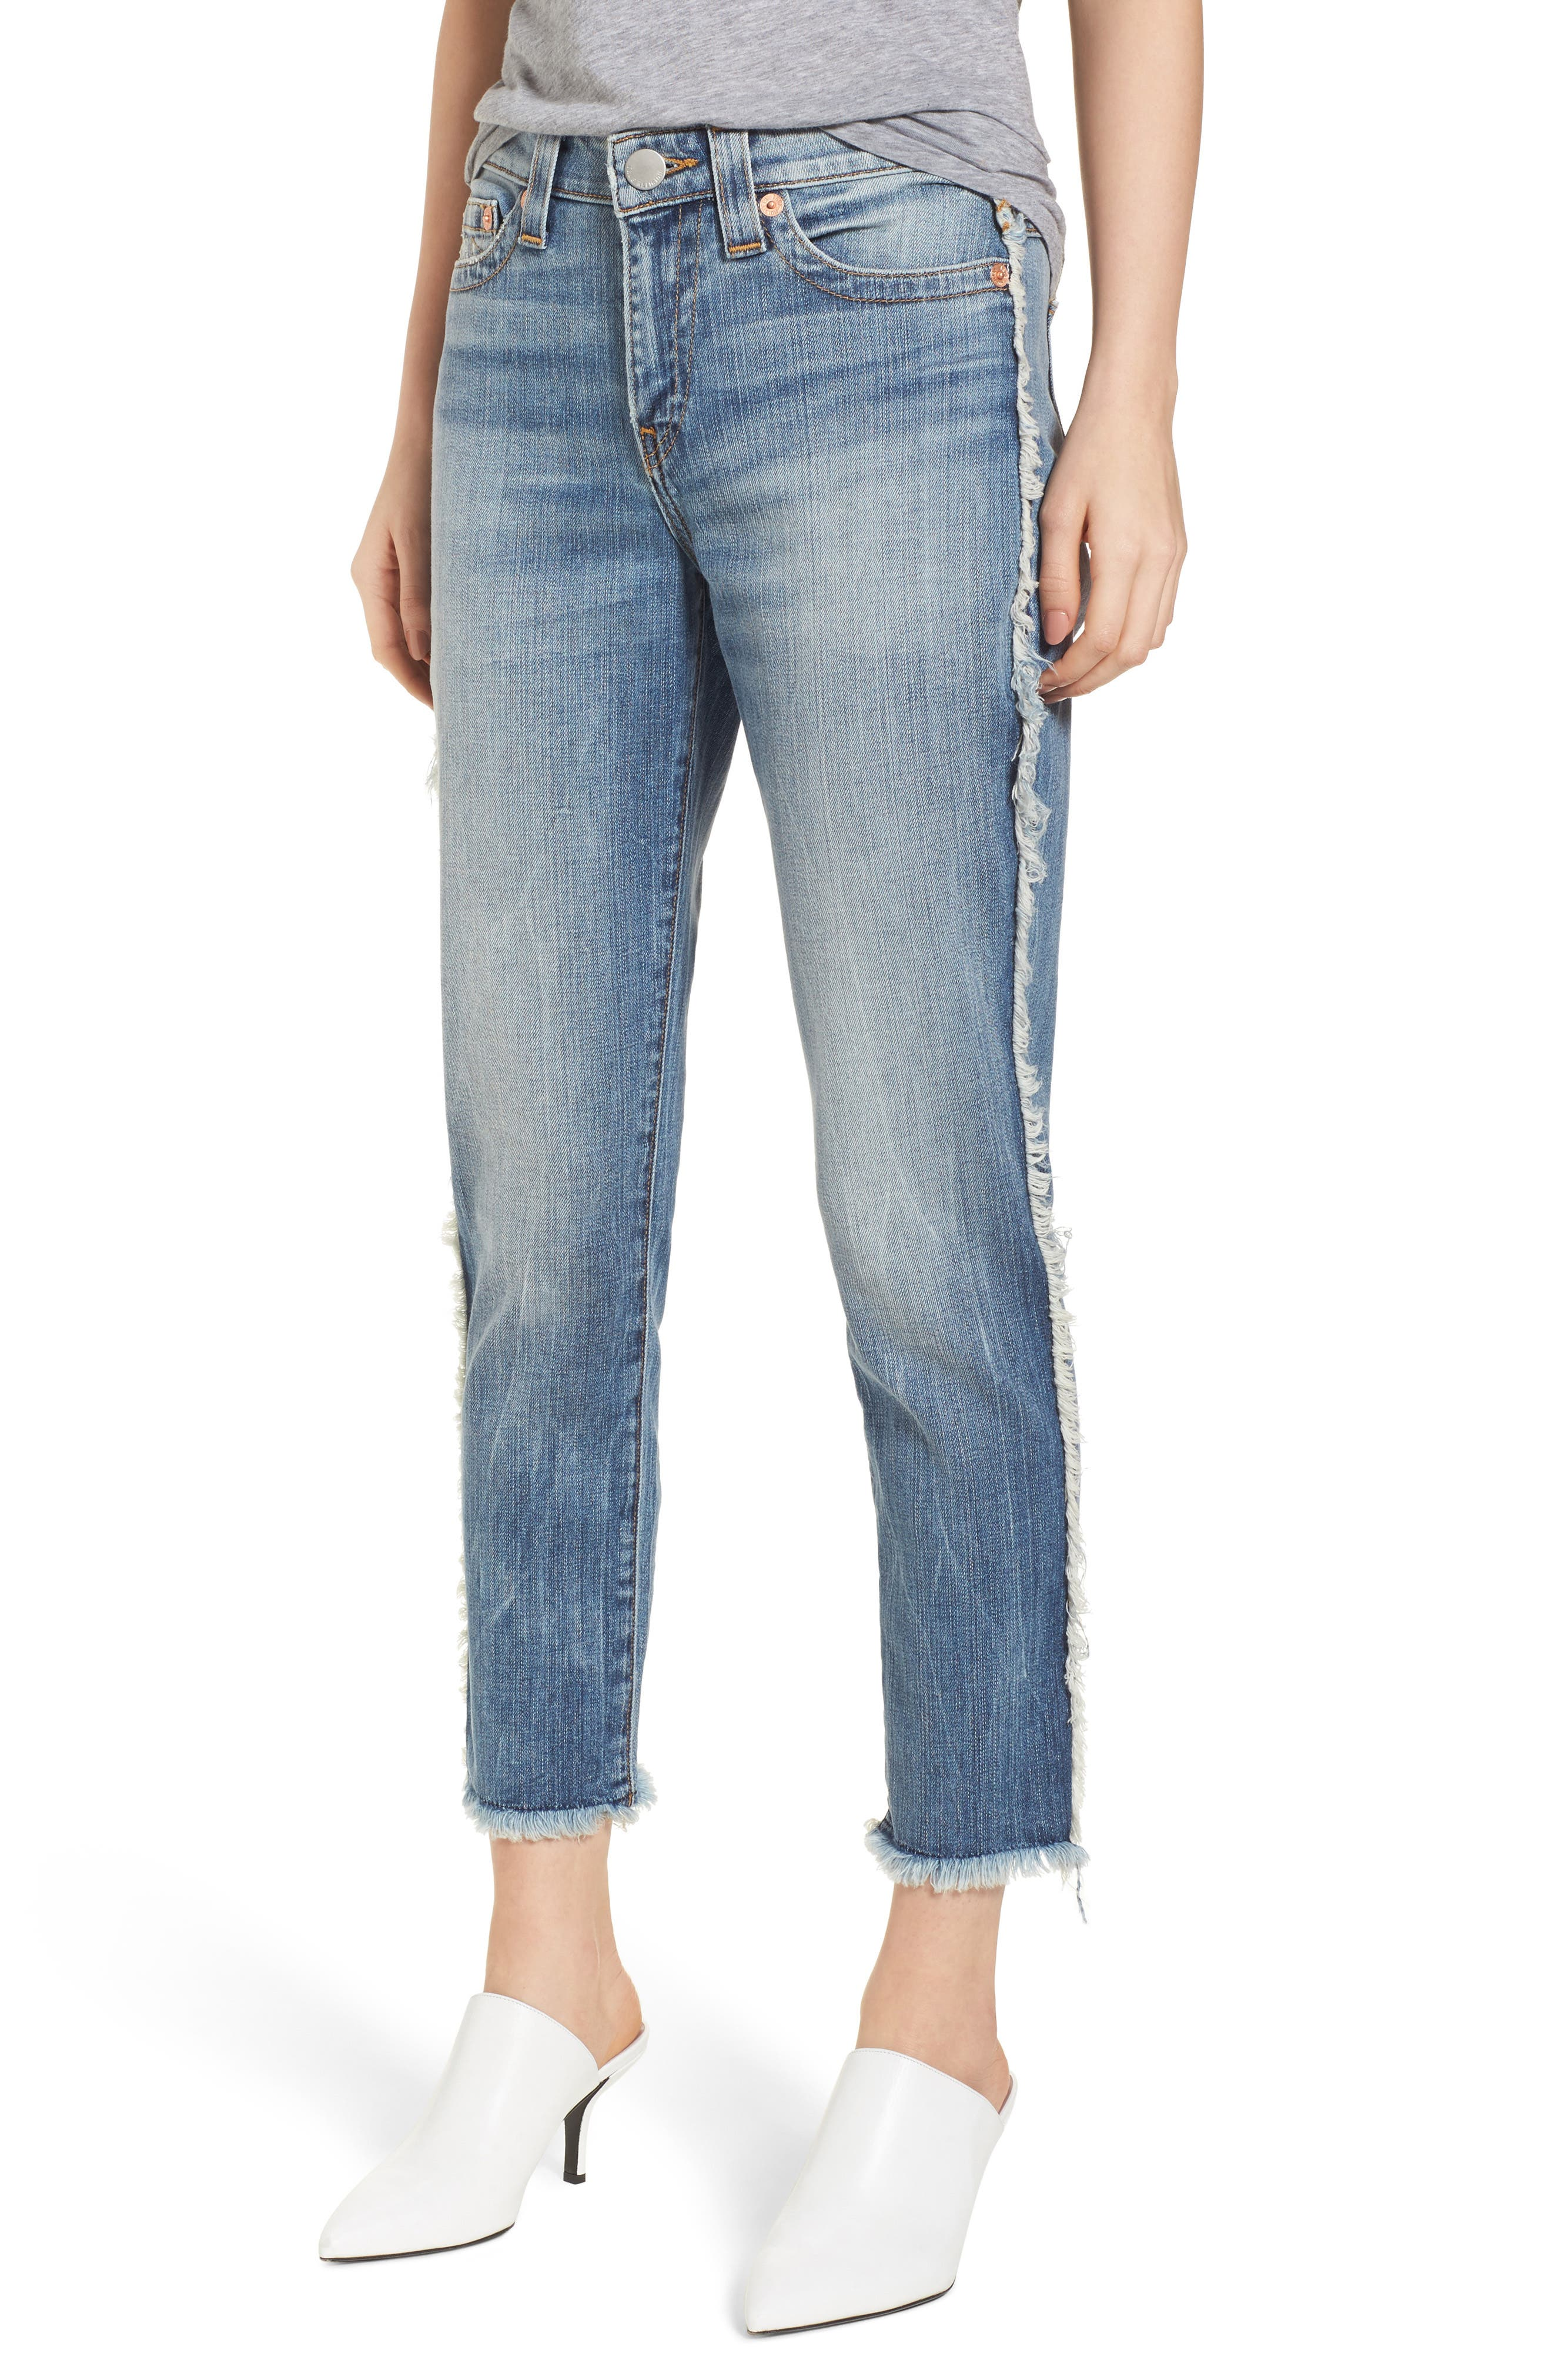 Colette High Waist Tapered Skinny Jeans,                         Main,                         color, 401